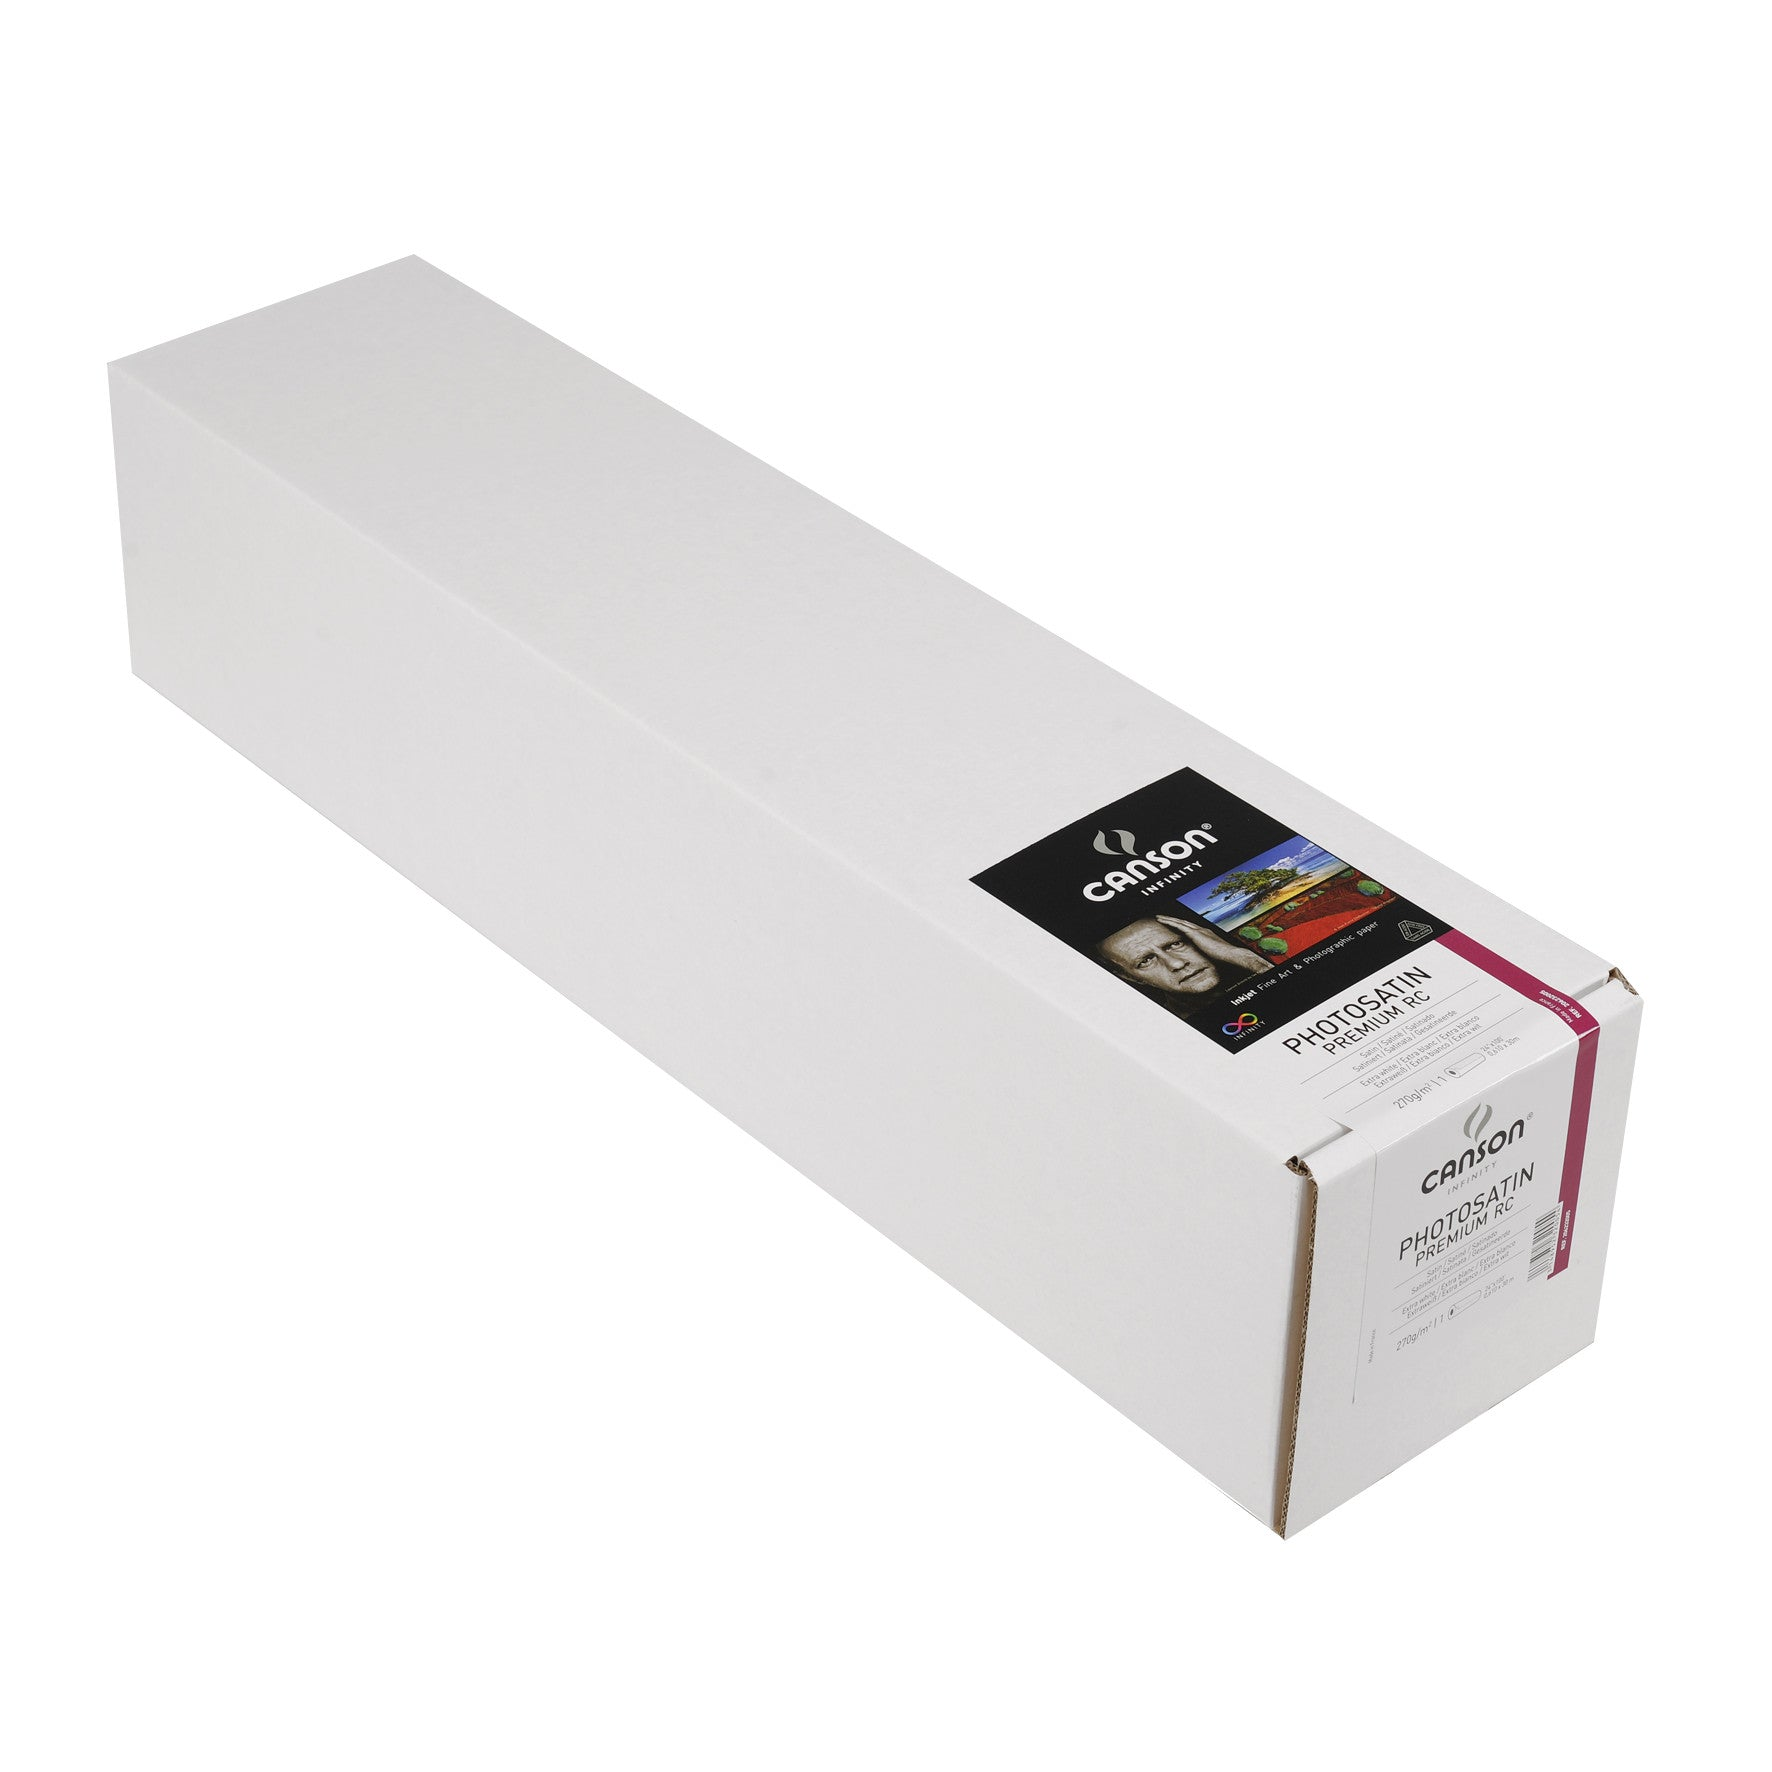 "Canson Infinity Photo Satin Premium RC - 270gsm - 24""x100' roll"